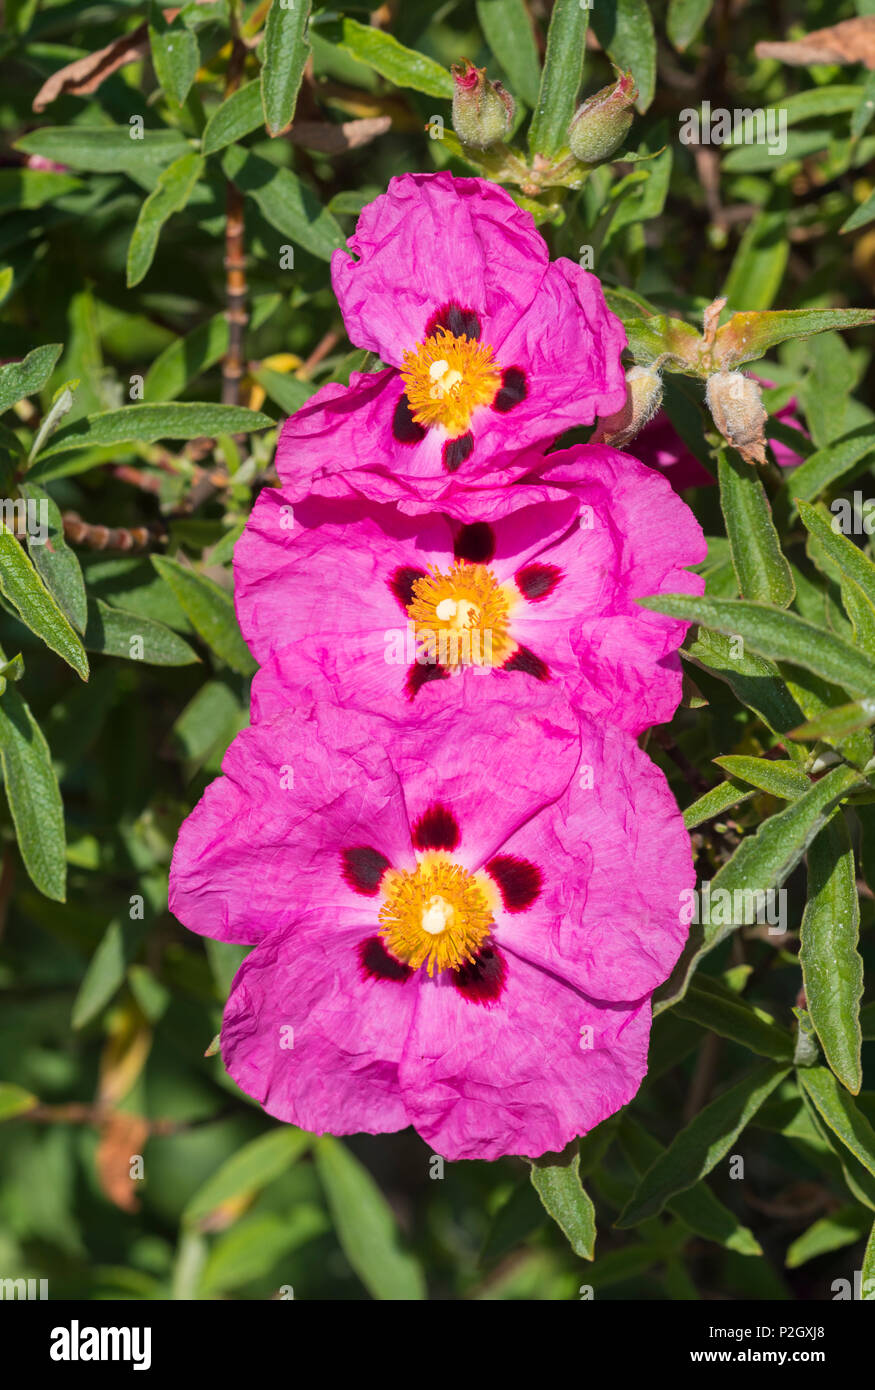 Pink Shrubby Rock Rose Flowers From The Genus Cistus From The